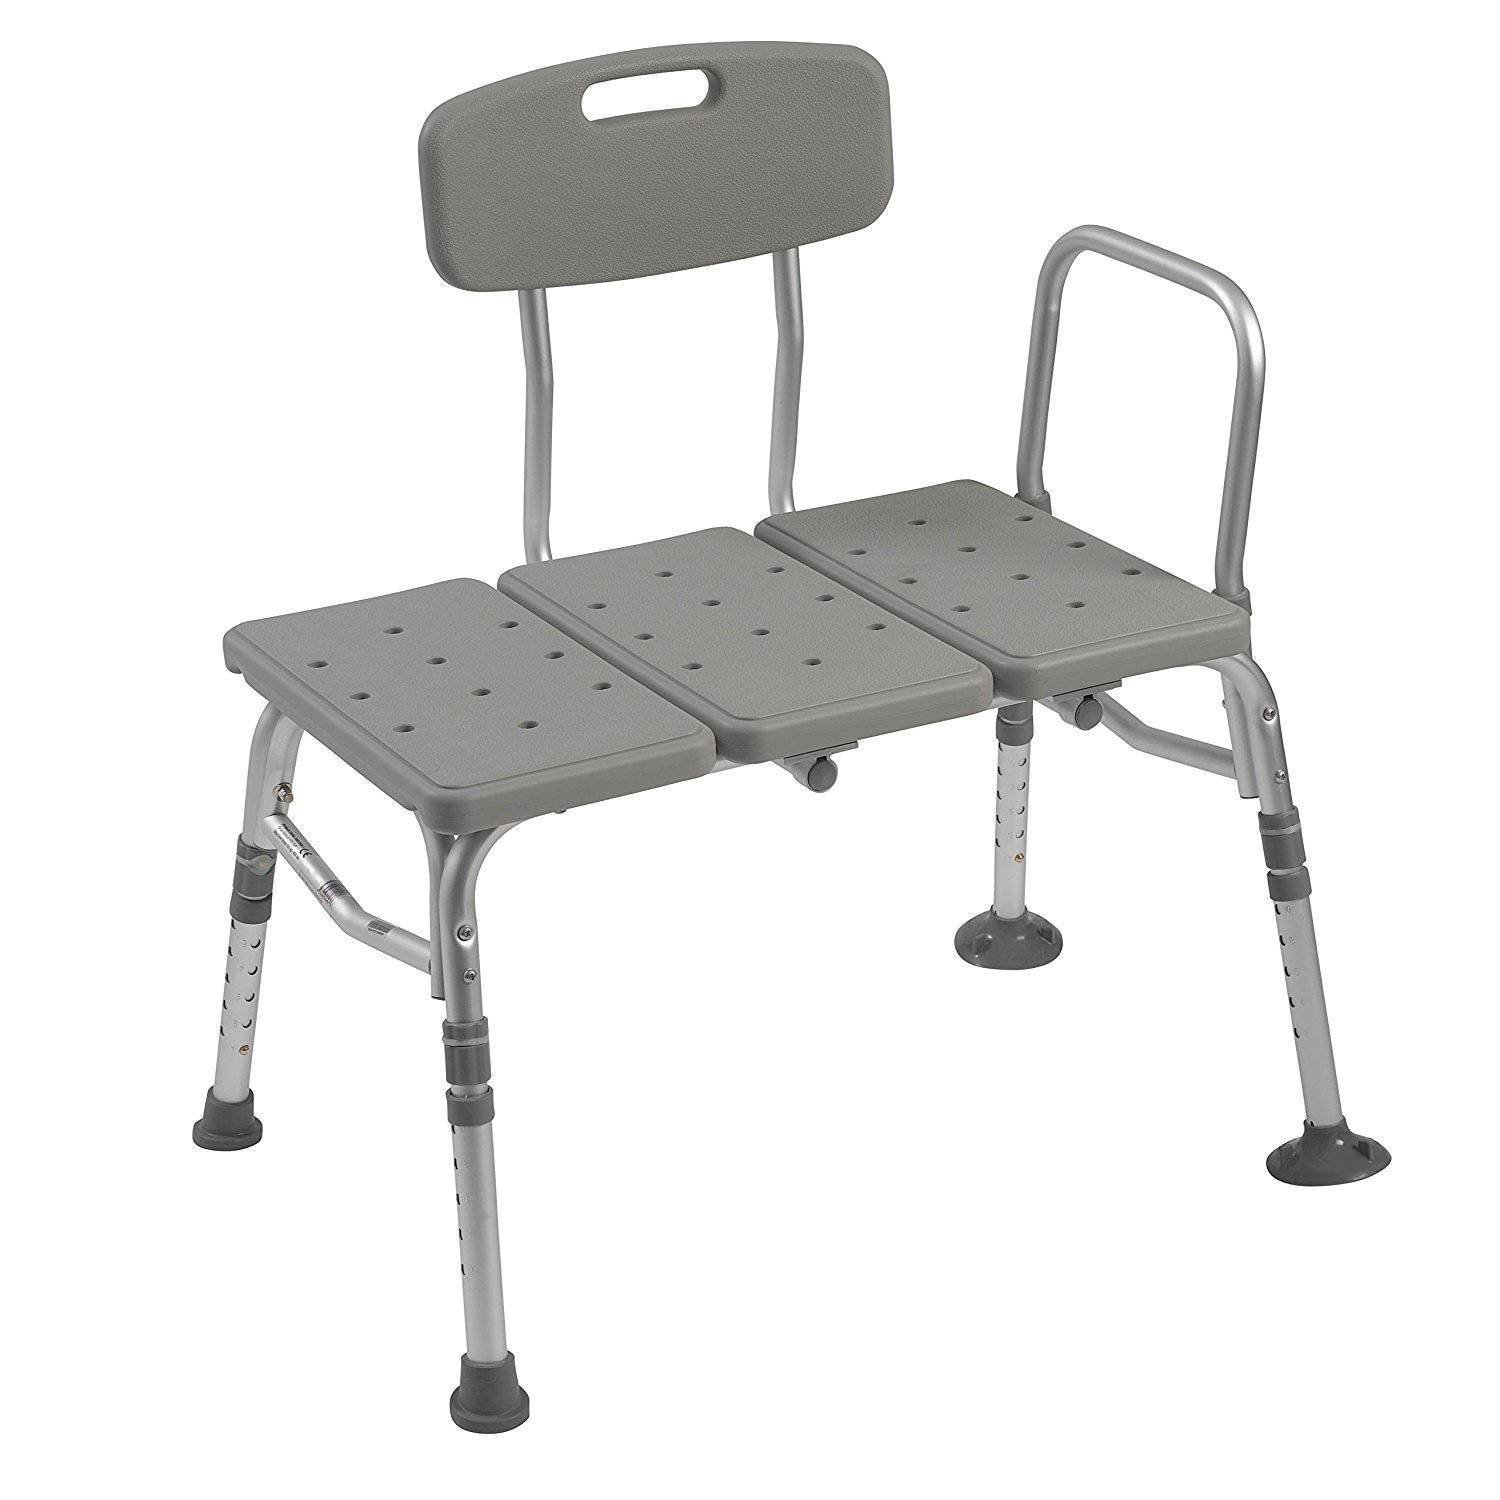 Moon Daughter Plastic Aluminum Shower Tub Transfer Bench Stool with Adjustable Backrest Seat Height Gray Extending Legs